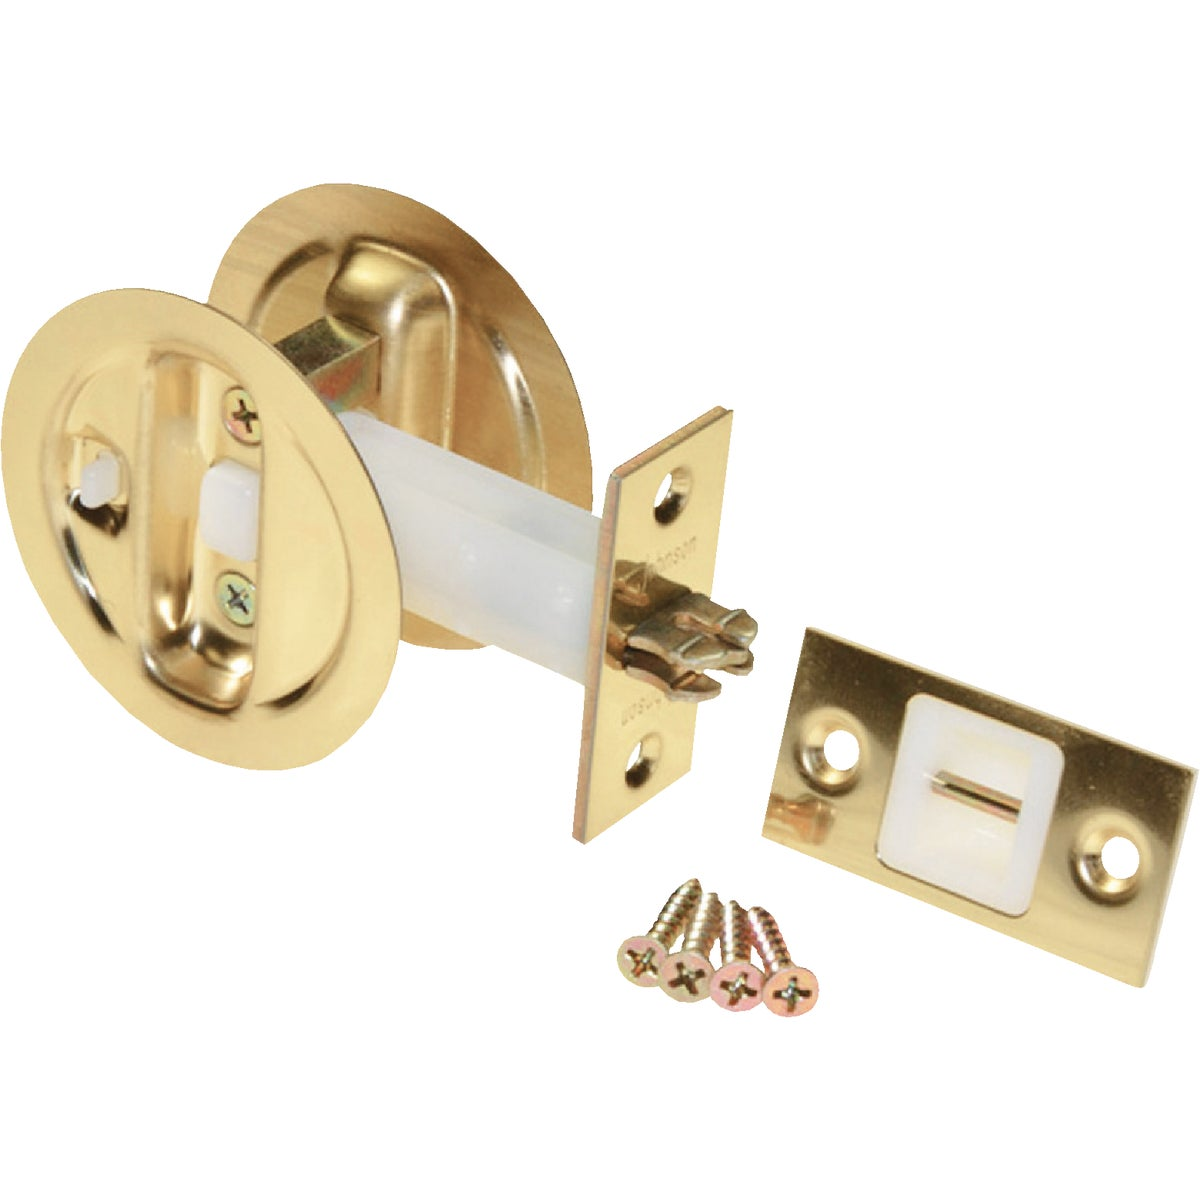 BRASS PRIVACY LOCK